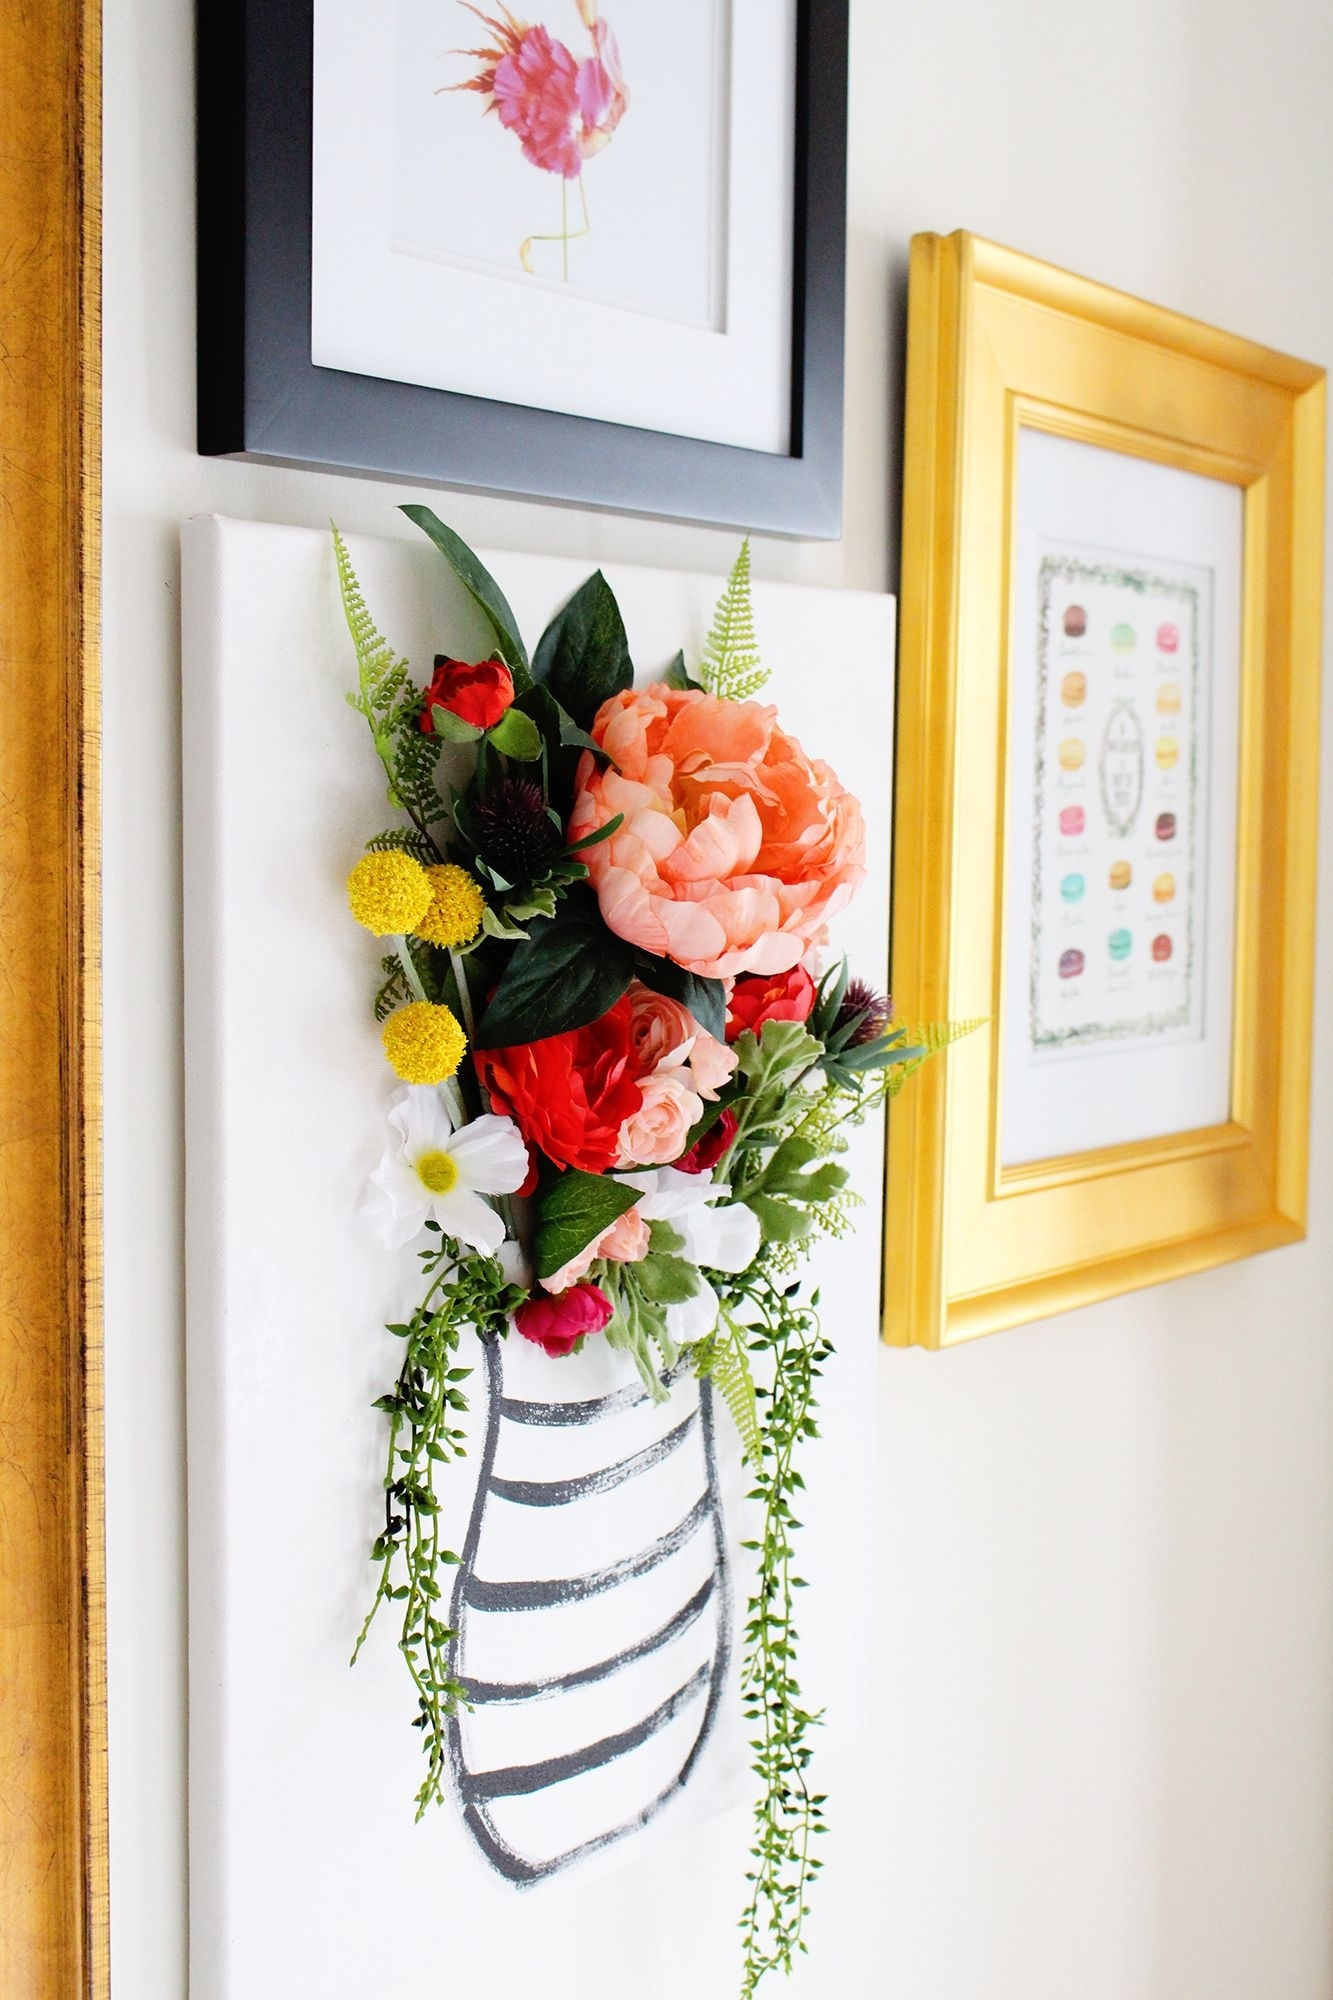 Diy 3 D Flower Canvas Art – Part 1 | Flower Canvas, Wall Pops And With Regard To Newest Canvas Wall Art Of Flowers (View 1 of 15)